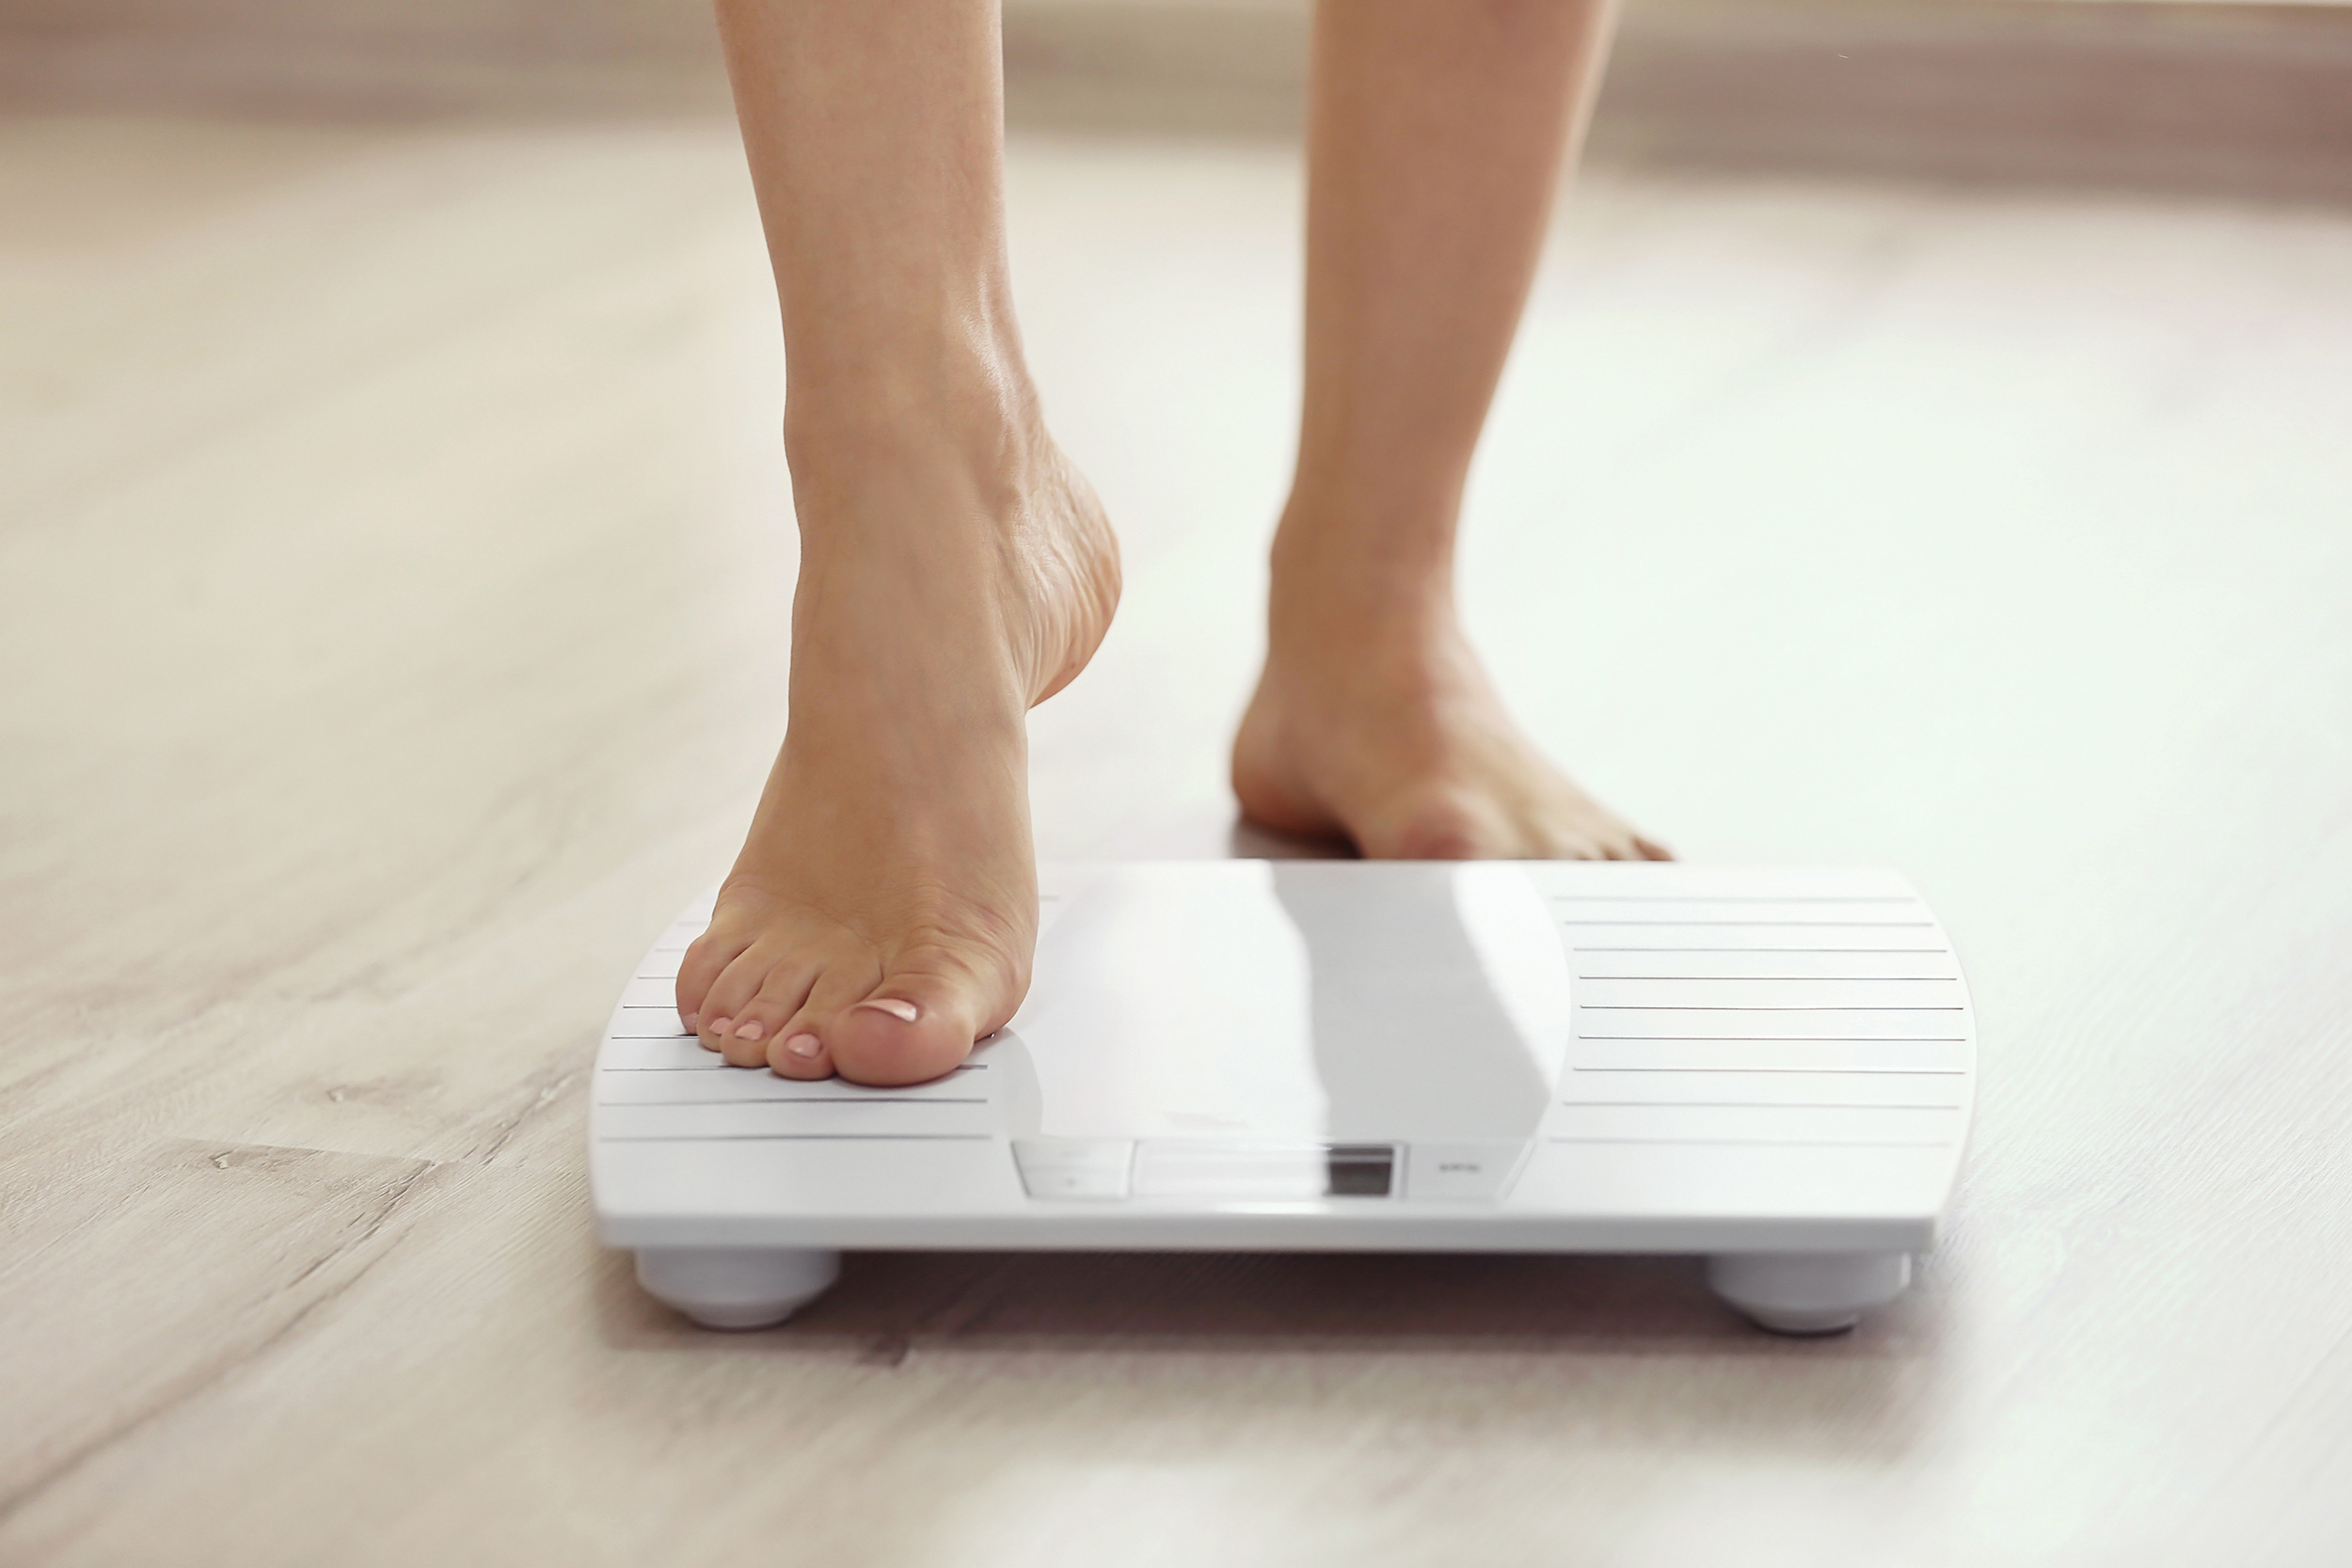 Should I weigh myself daily?